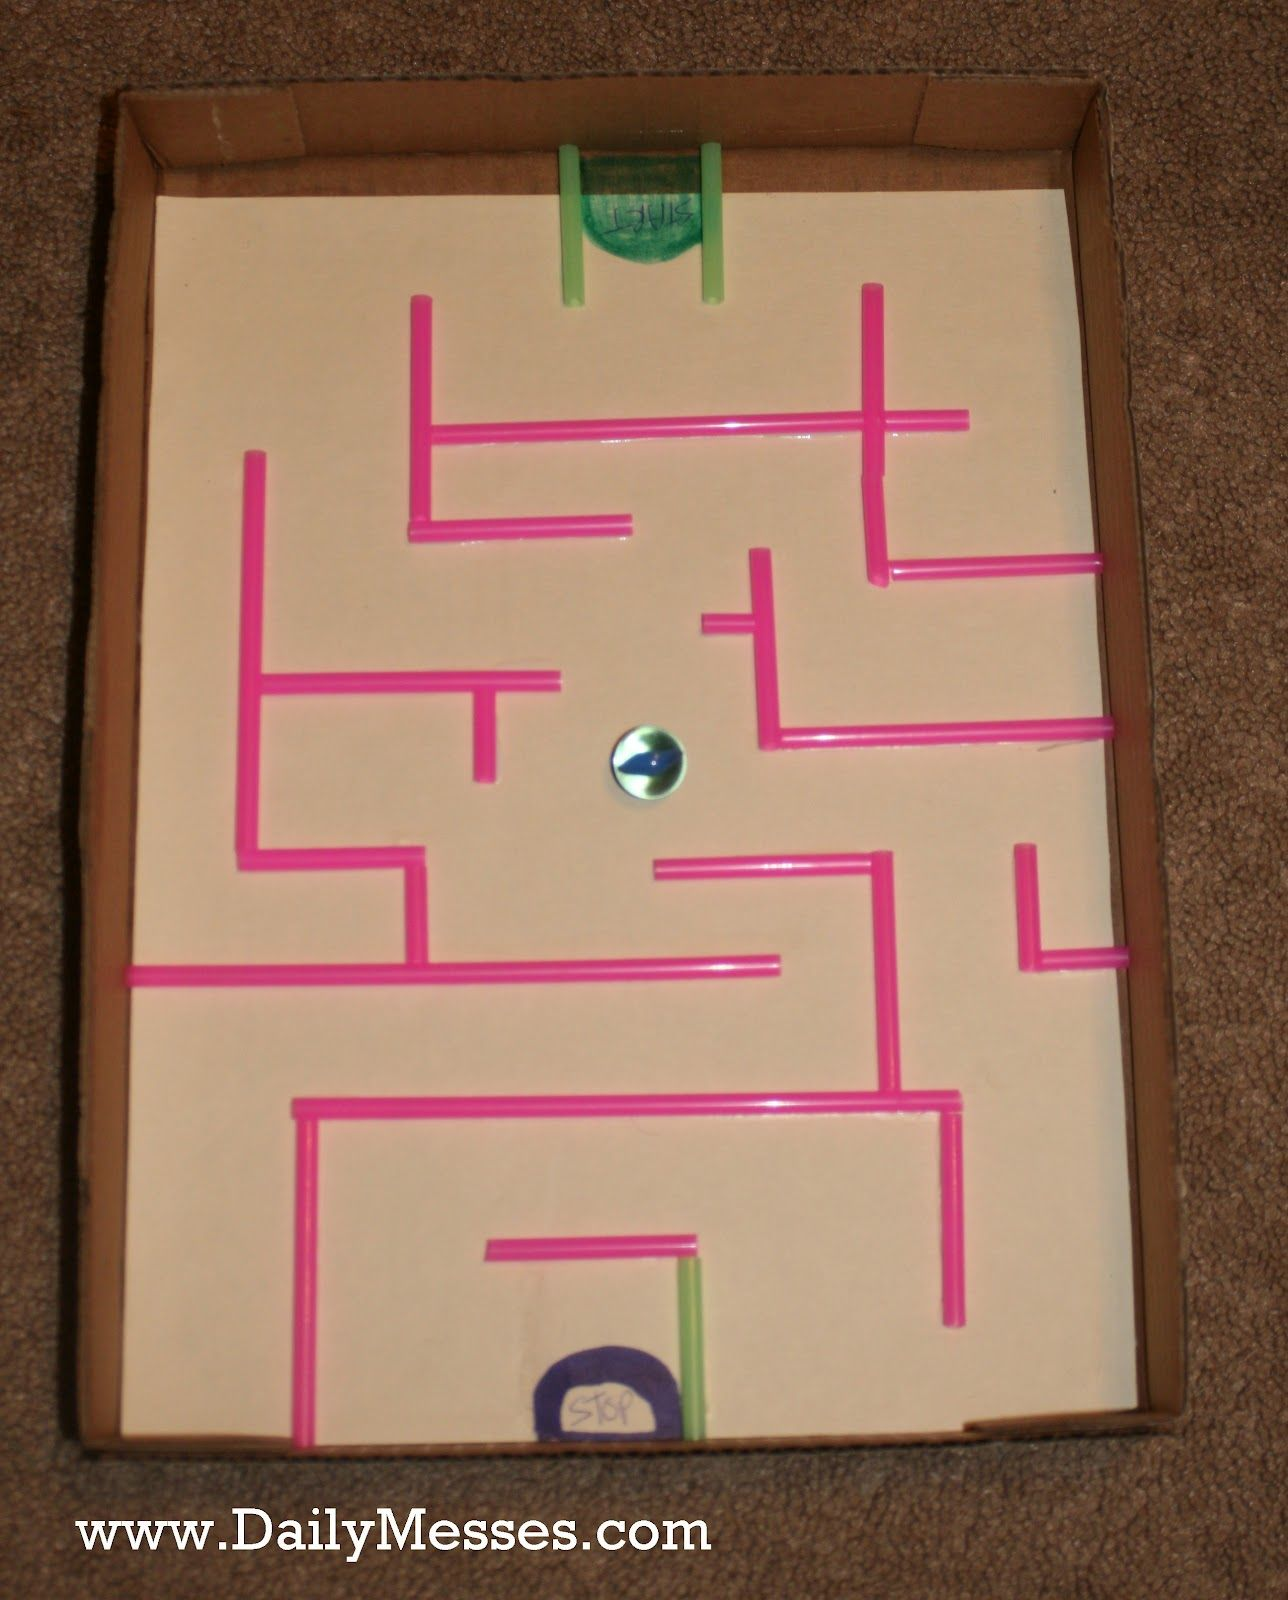 30 Shoe Box Craft Ideas: Daily Messes: It's A-Mazing: Shoe Box Lid Maze